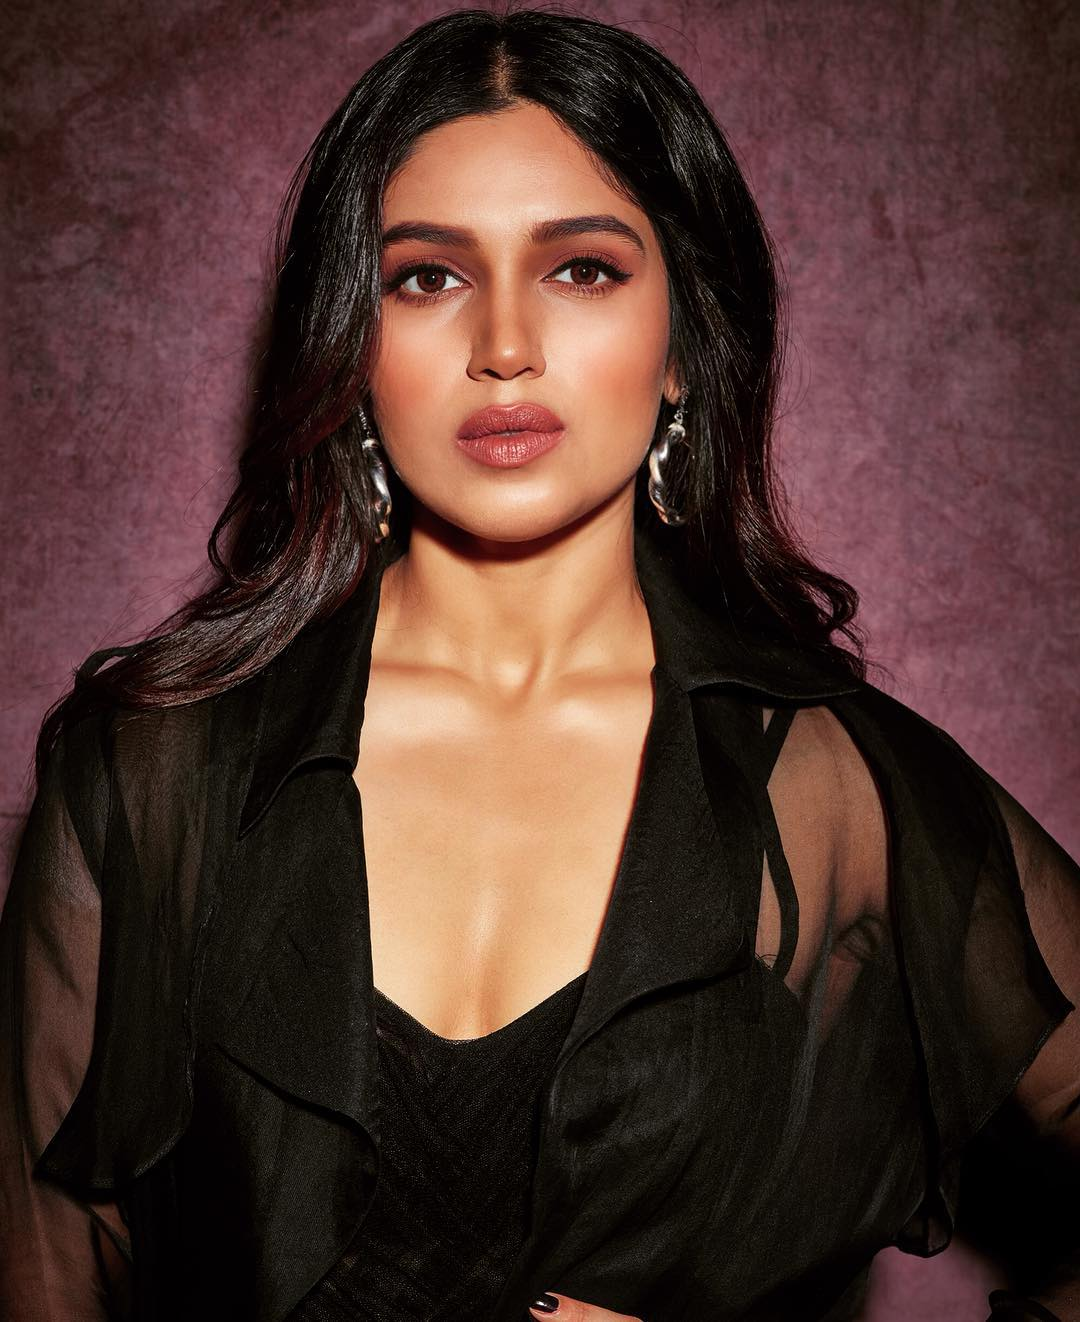 Bhumi Pednekar Pictures - Hd Actress Photo